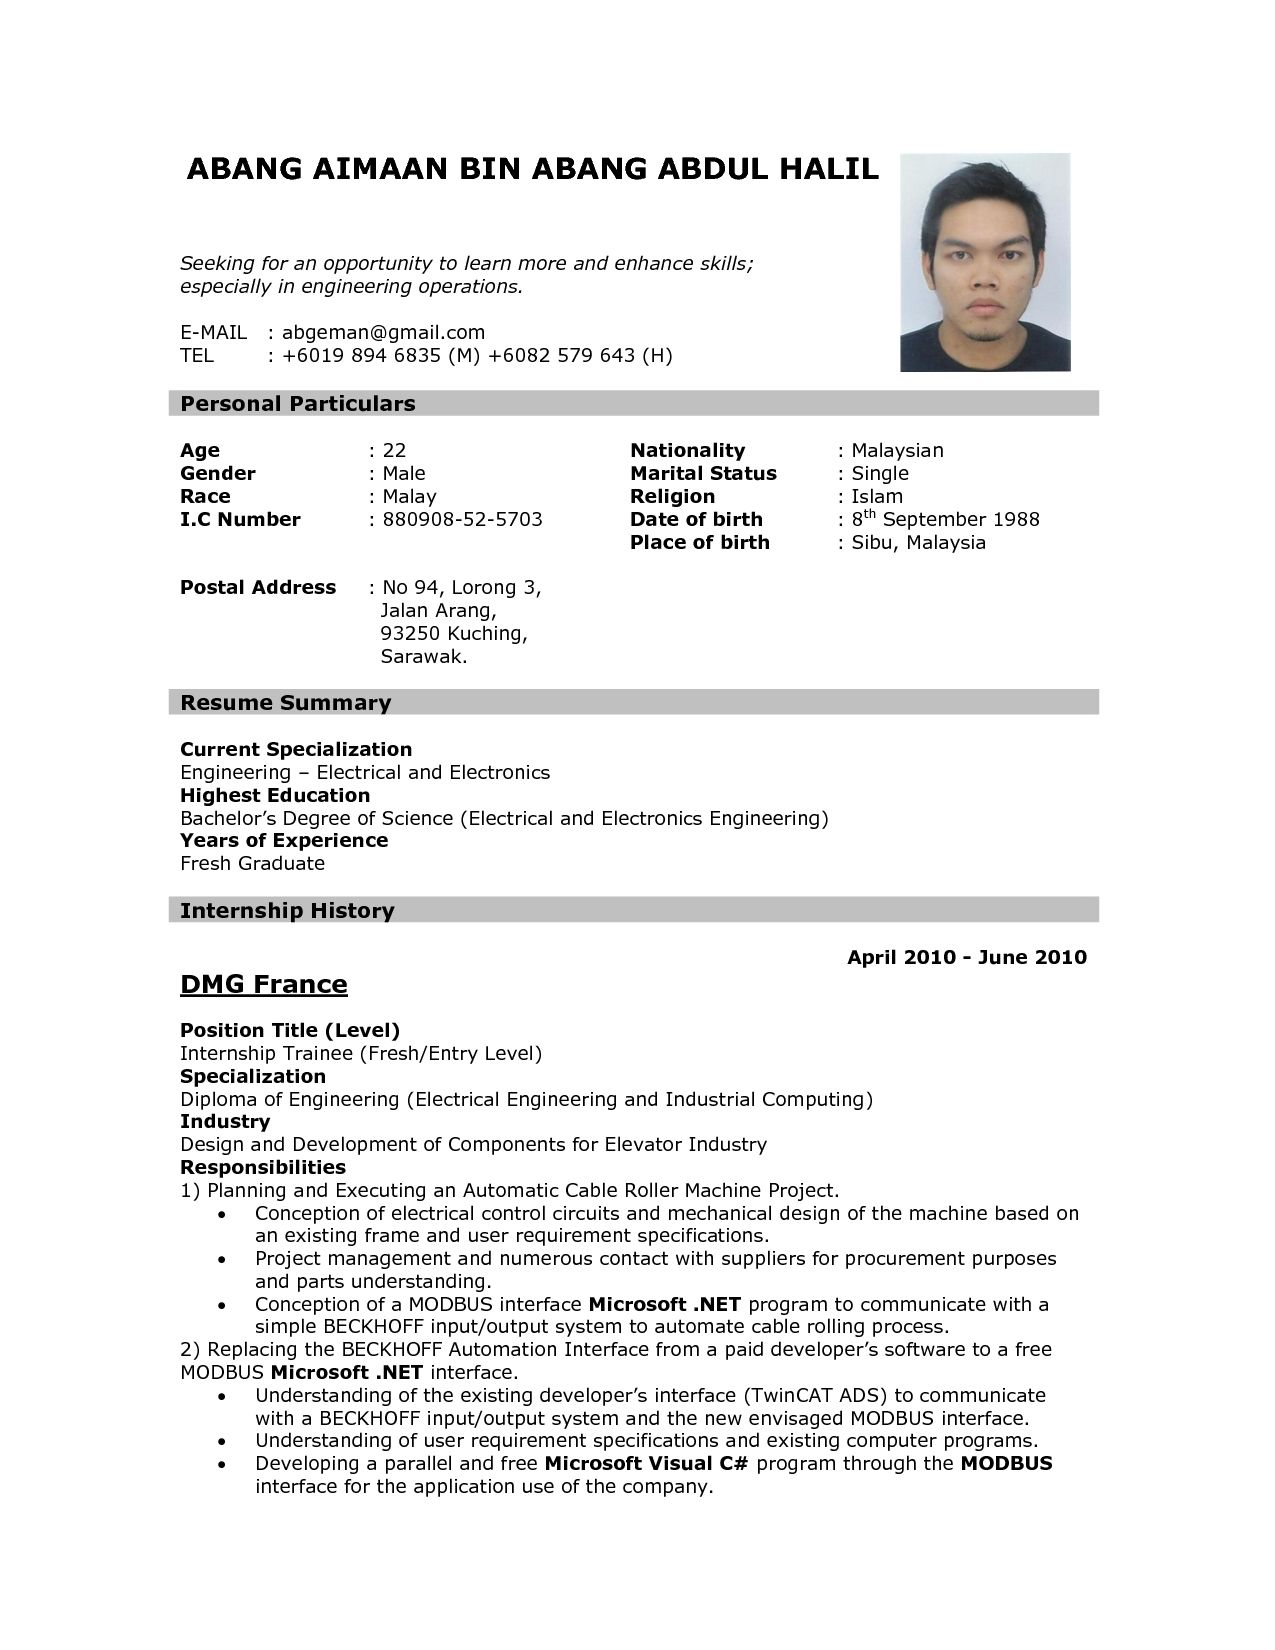 Application Letter Resume Format Of Resume For Job Application To Download Data